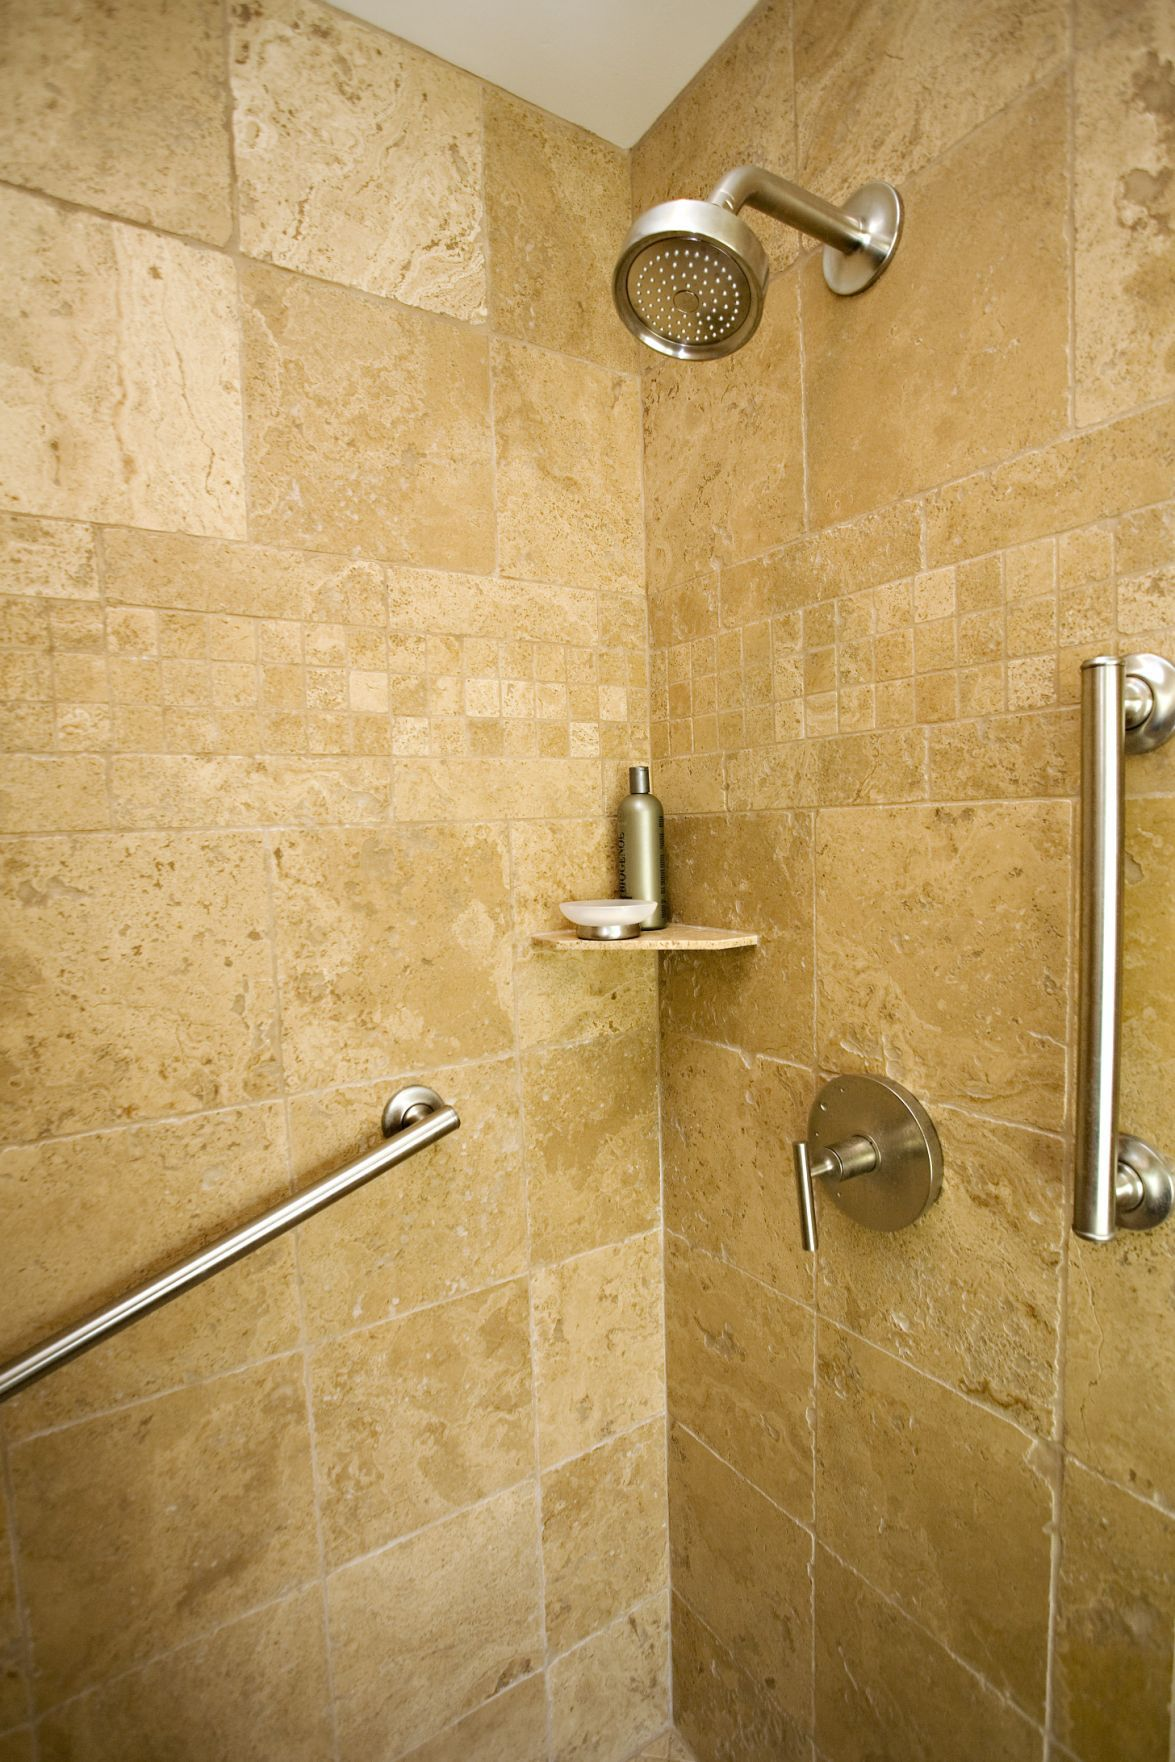 Charmant Can I Drill Into Corian To Install Grab Bars?